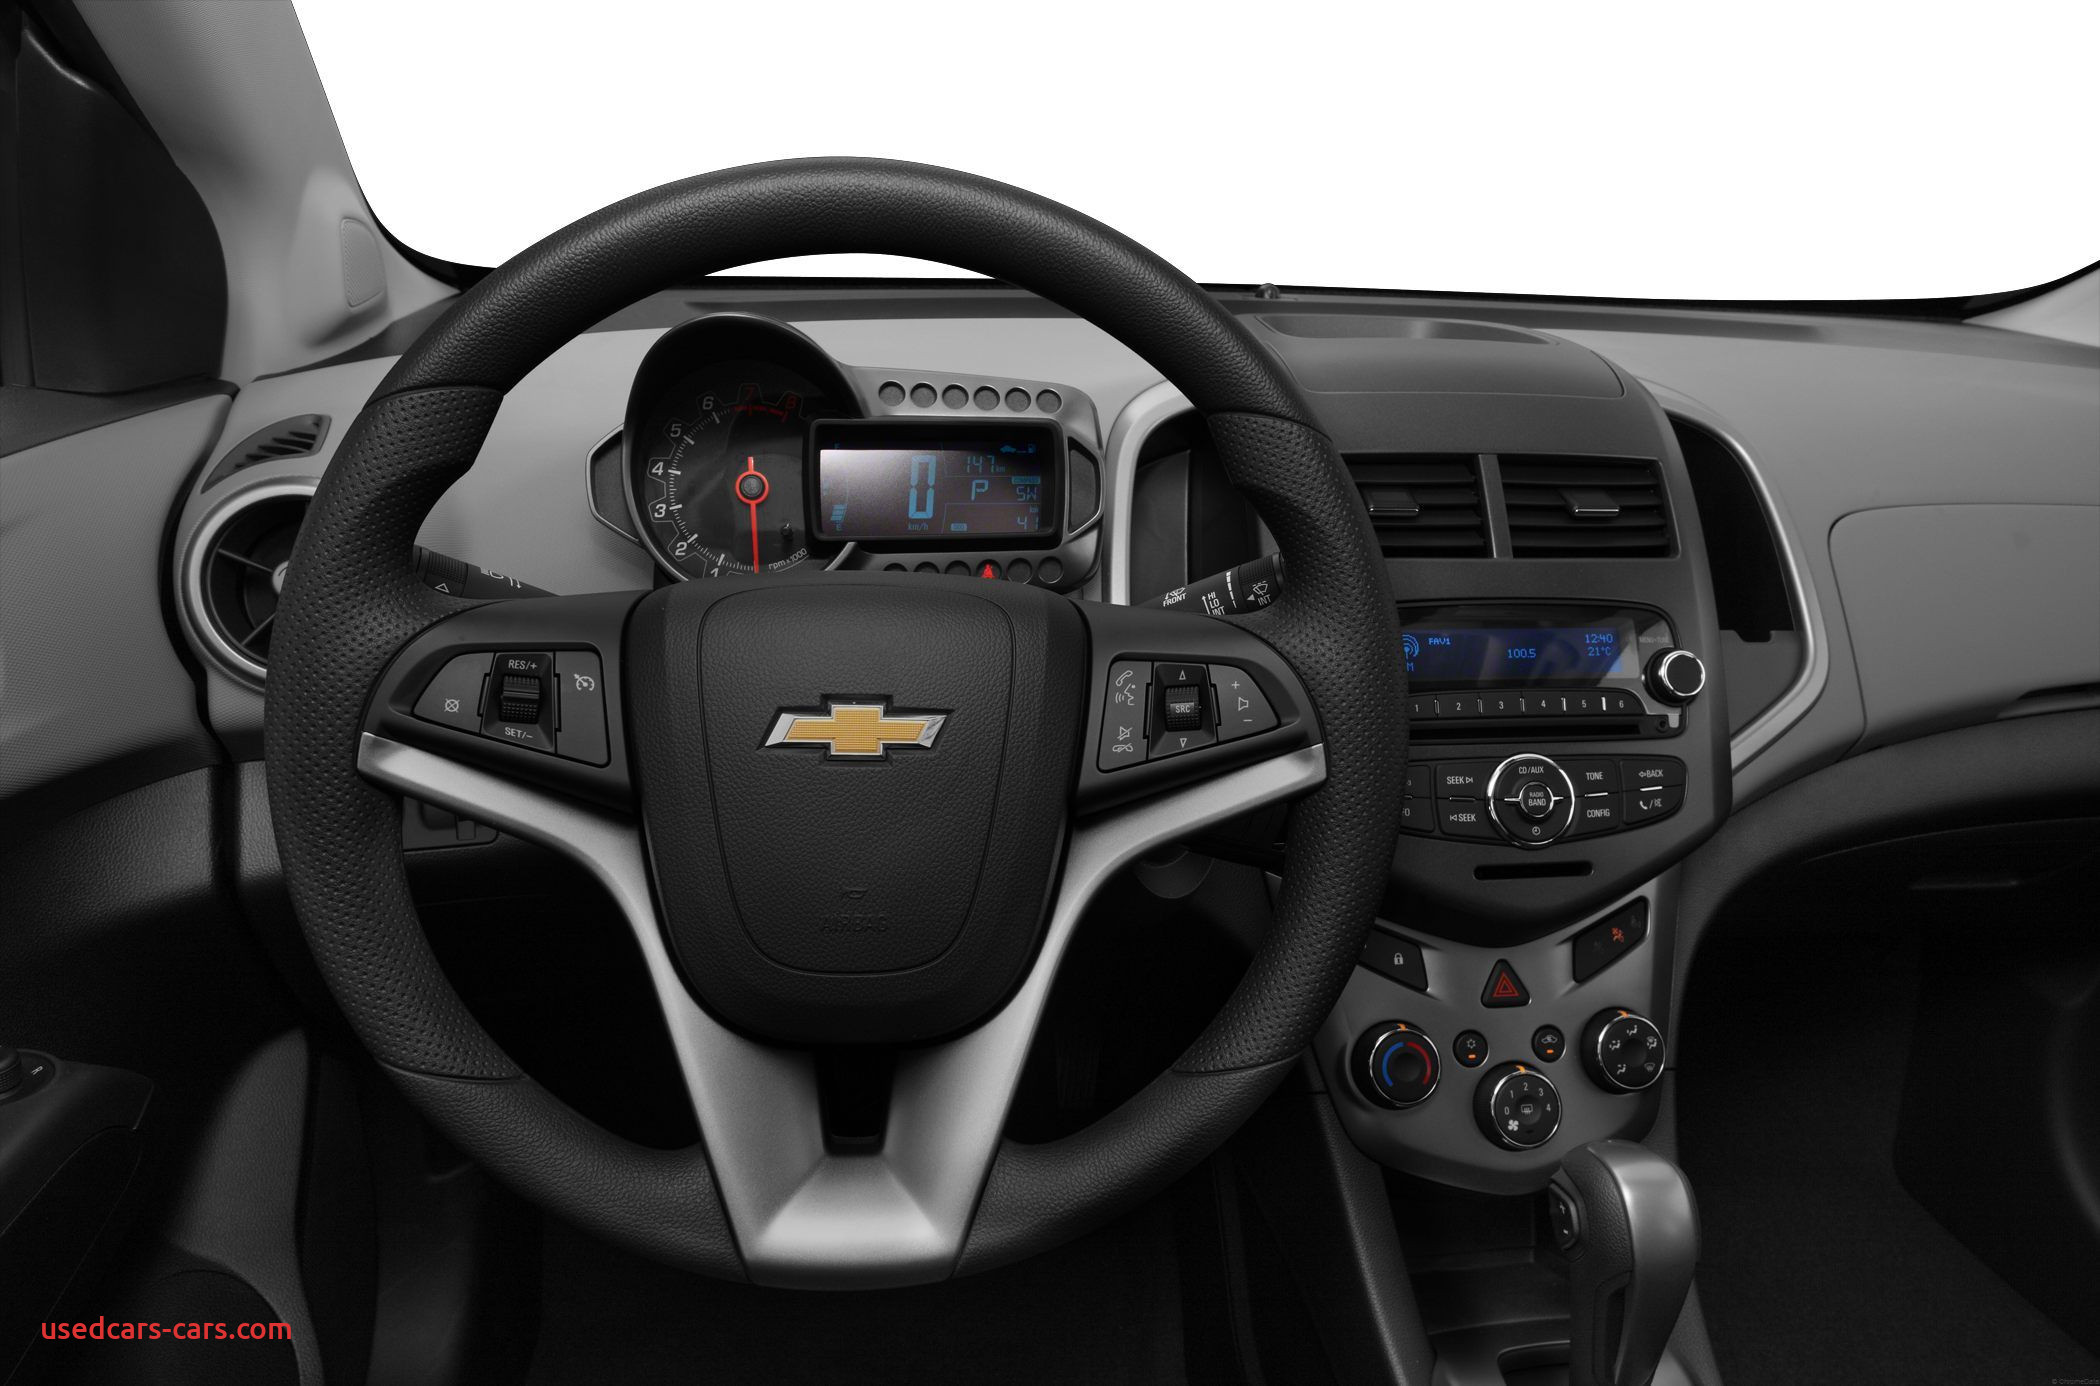 2014 Chevrolet sonic Inspirational 2013 Chevy sonic Ls Hatchback Phone In the Steering Wheel